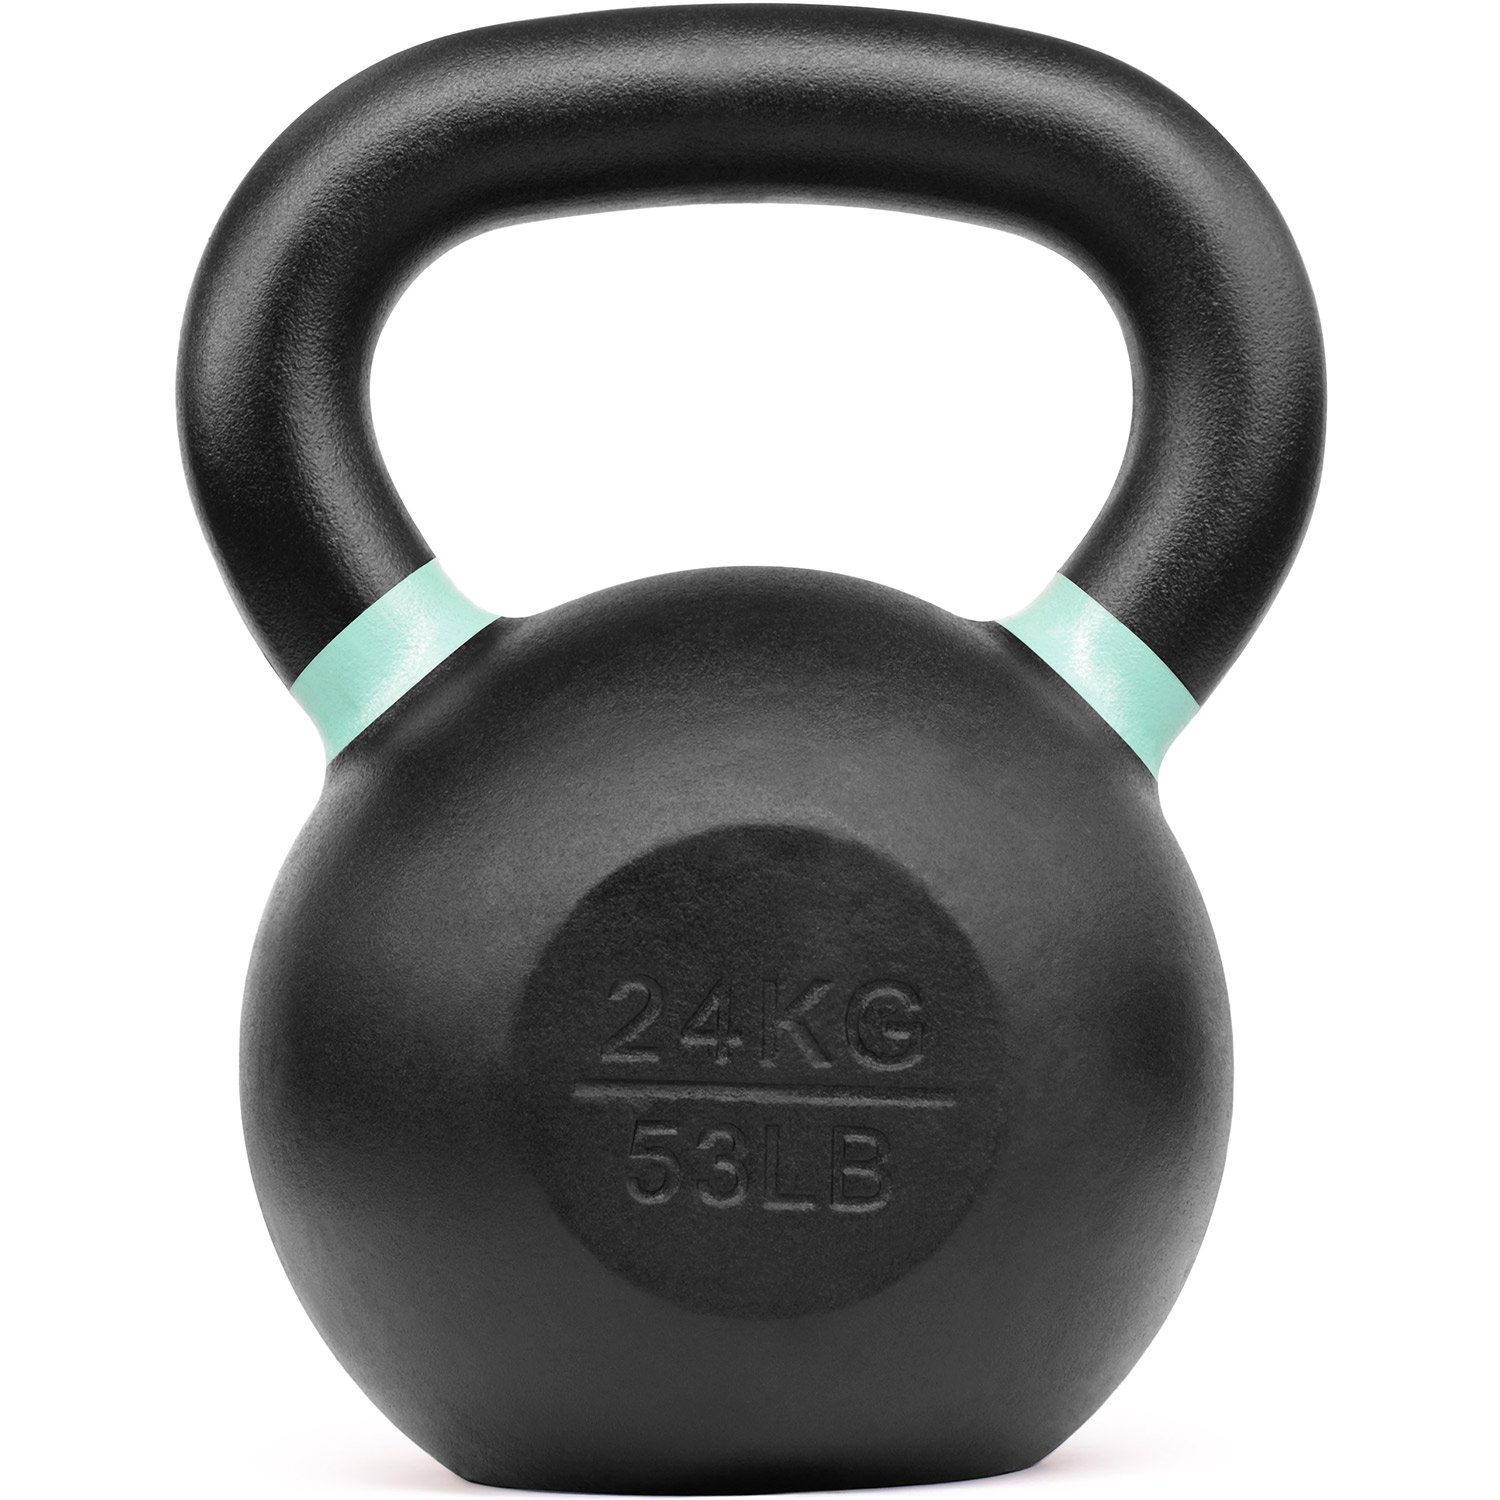 Yes4All Powder Coated Kettlebell Weights with Wide Handles & Flat Bottoms – 24kg/53lbs Cast Iron Kettlebells for Strength, Conditioning & Cross-Training